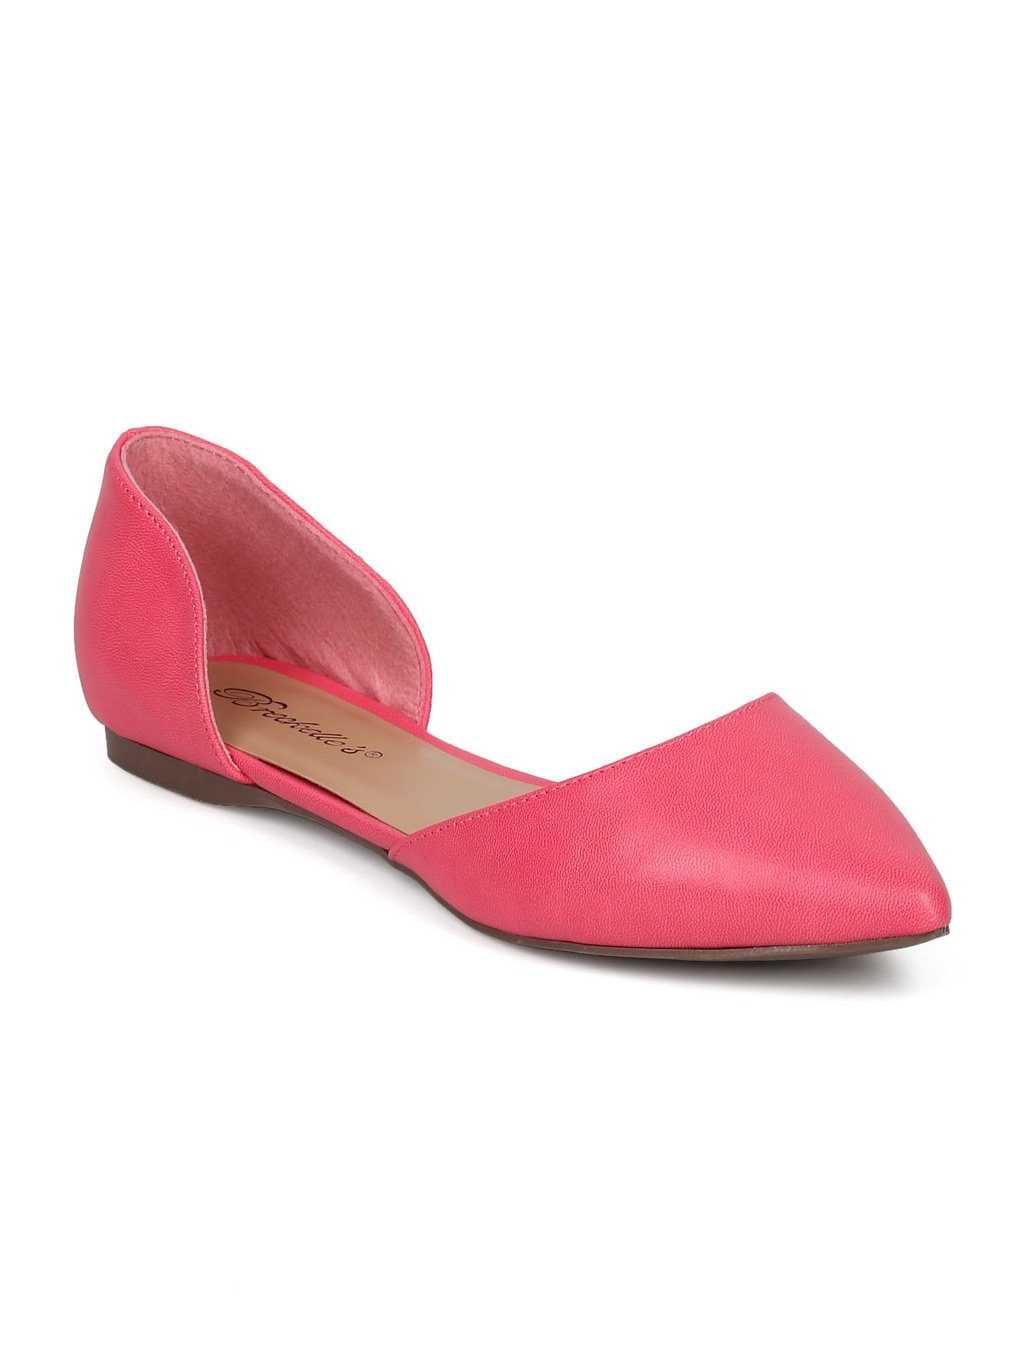 Breckelle's Women Leatherette Pointy Toe Dorsay Flat GG17 B06XJLD5R3 9 M US|Pink